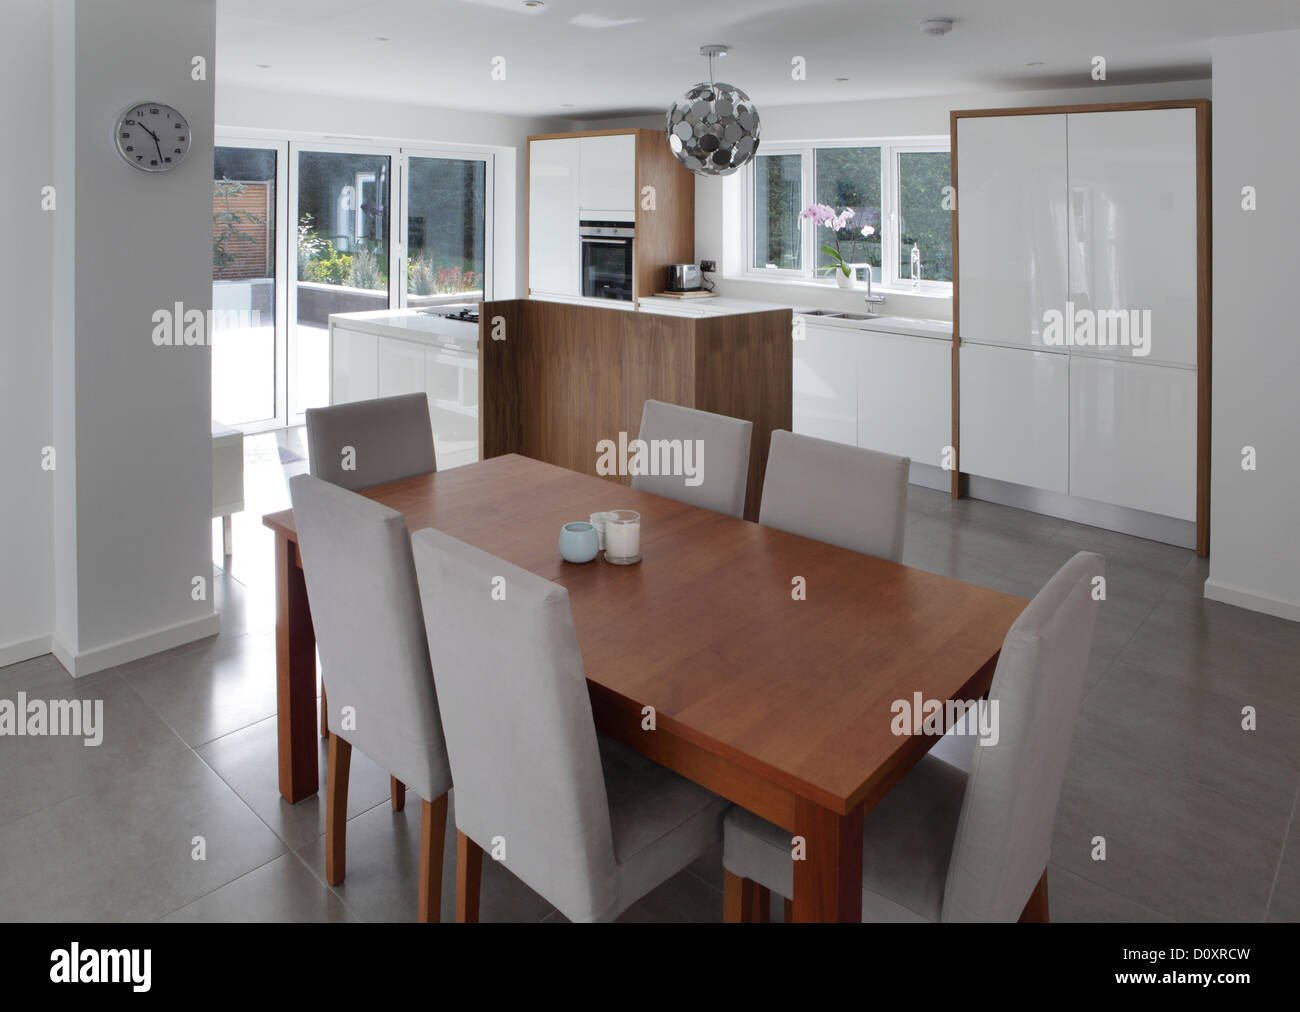 Dining table in open plan house - Stock Image